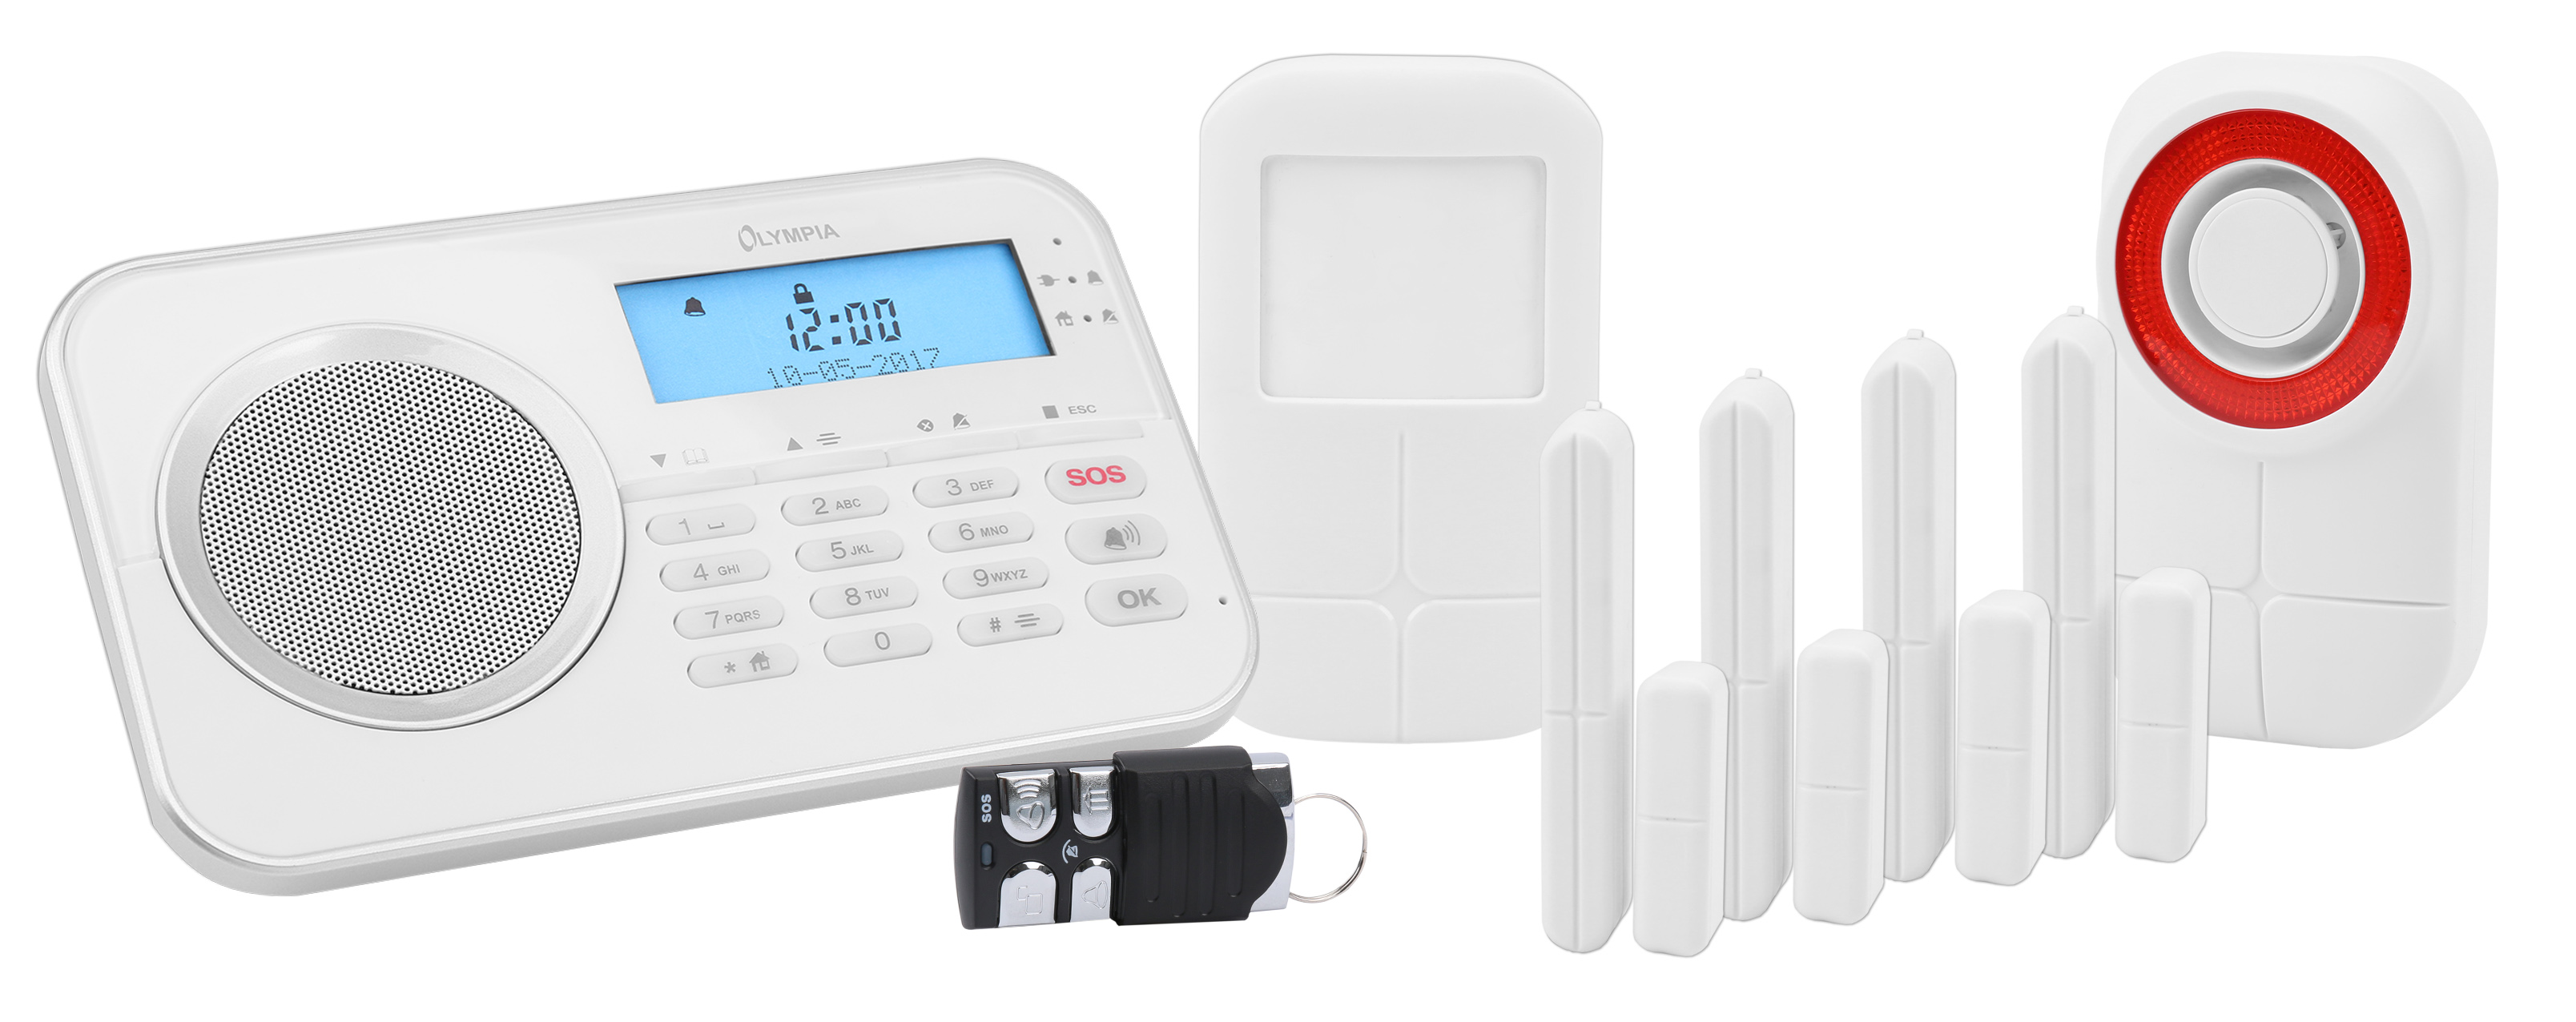 Protect 9878 olympia business systems for Spiegel olympia